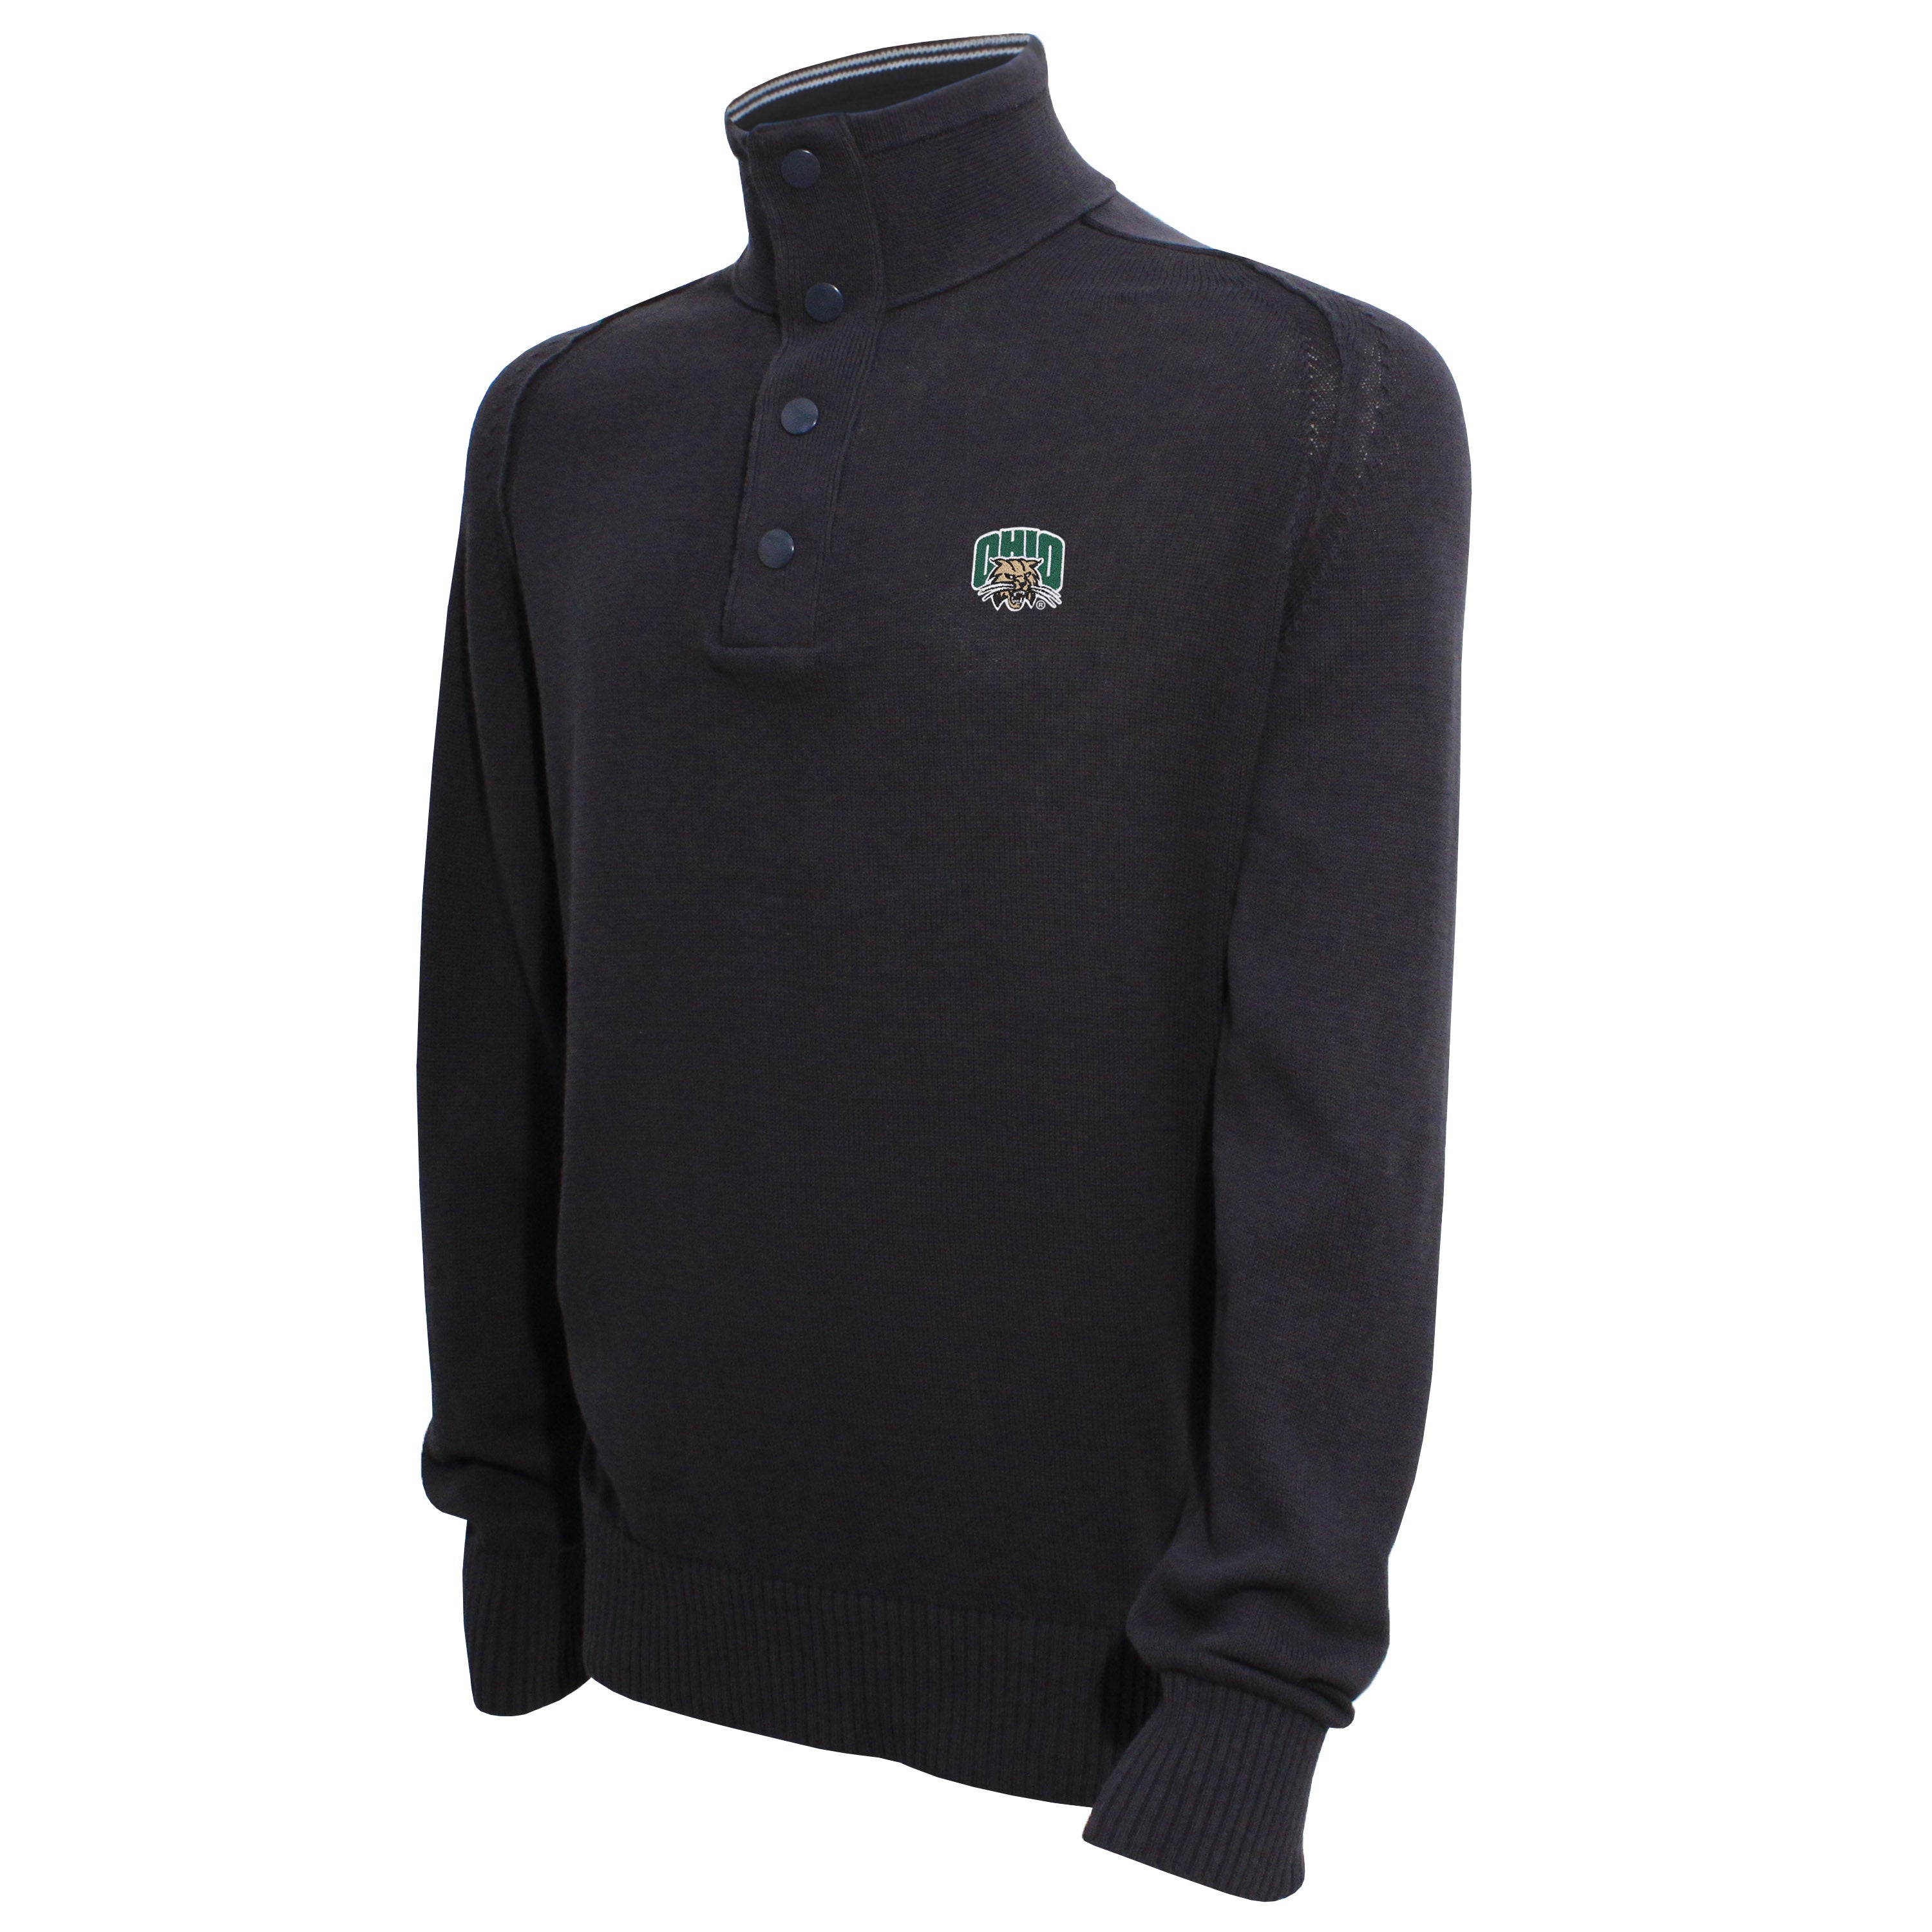 Vesi Ohio Men's Carbon Quarter Zip Sweater